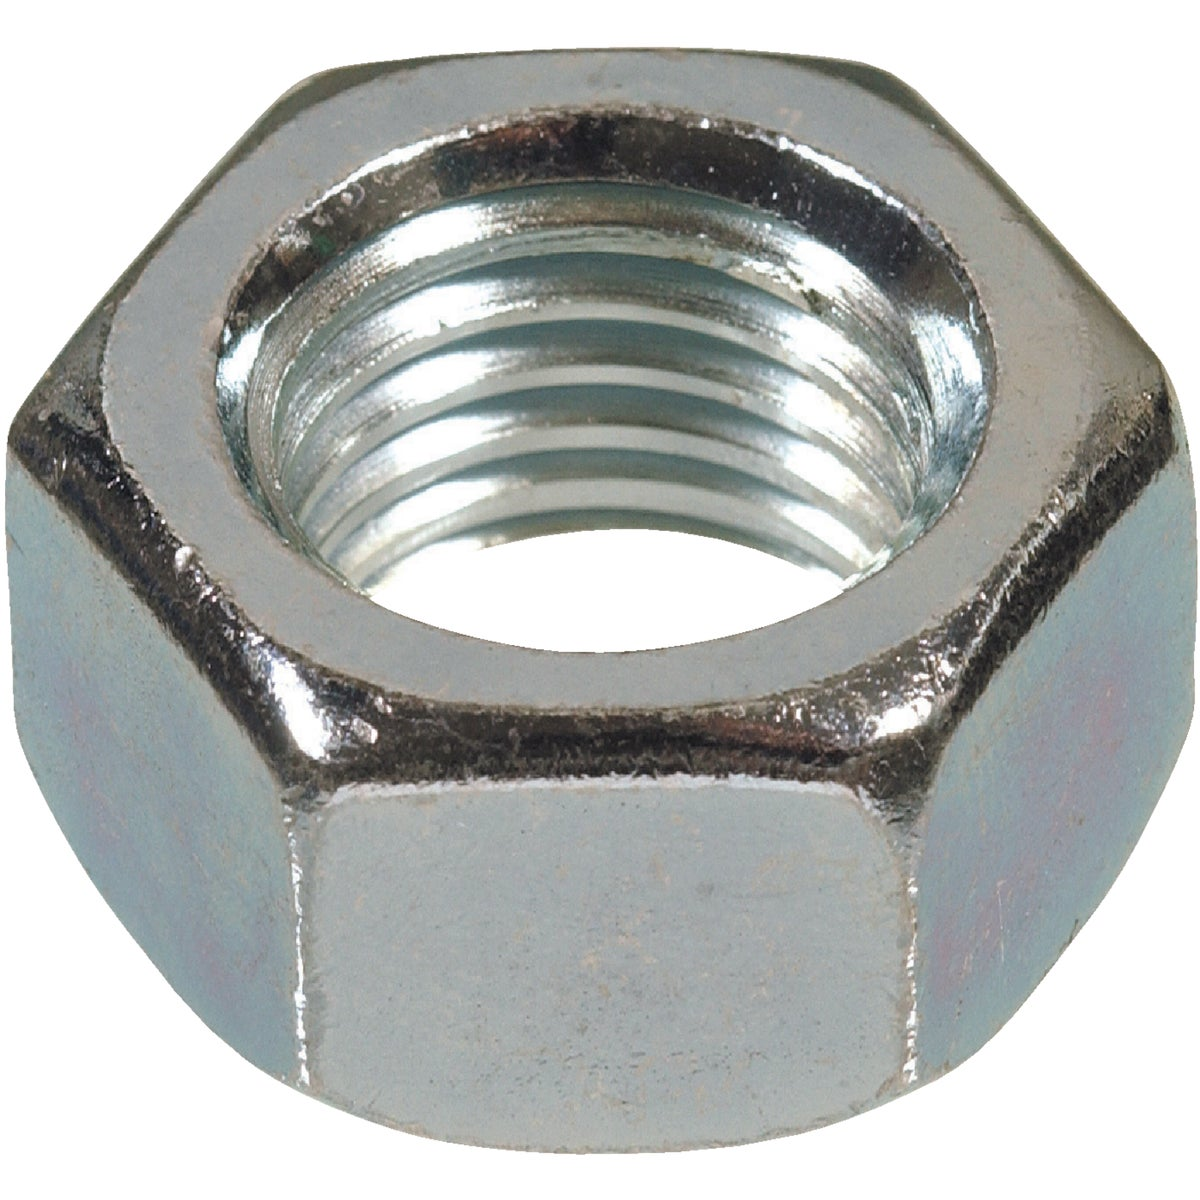 9/16-12 C THREAD HEX NUT - 150018 by Hillman Fastener